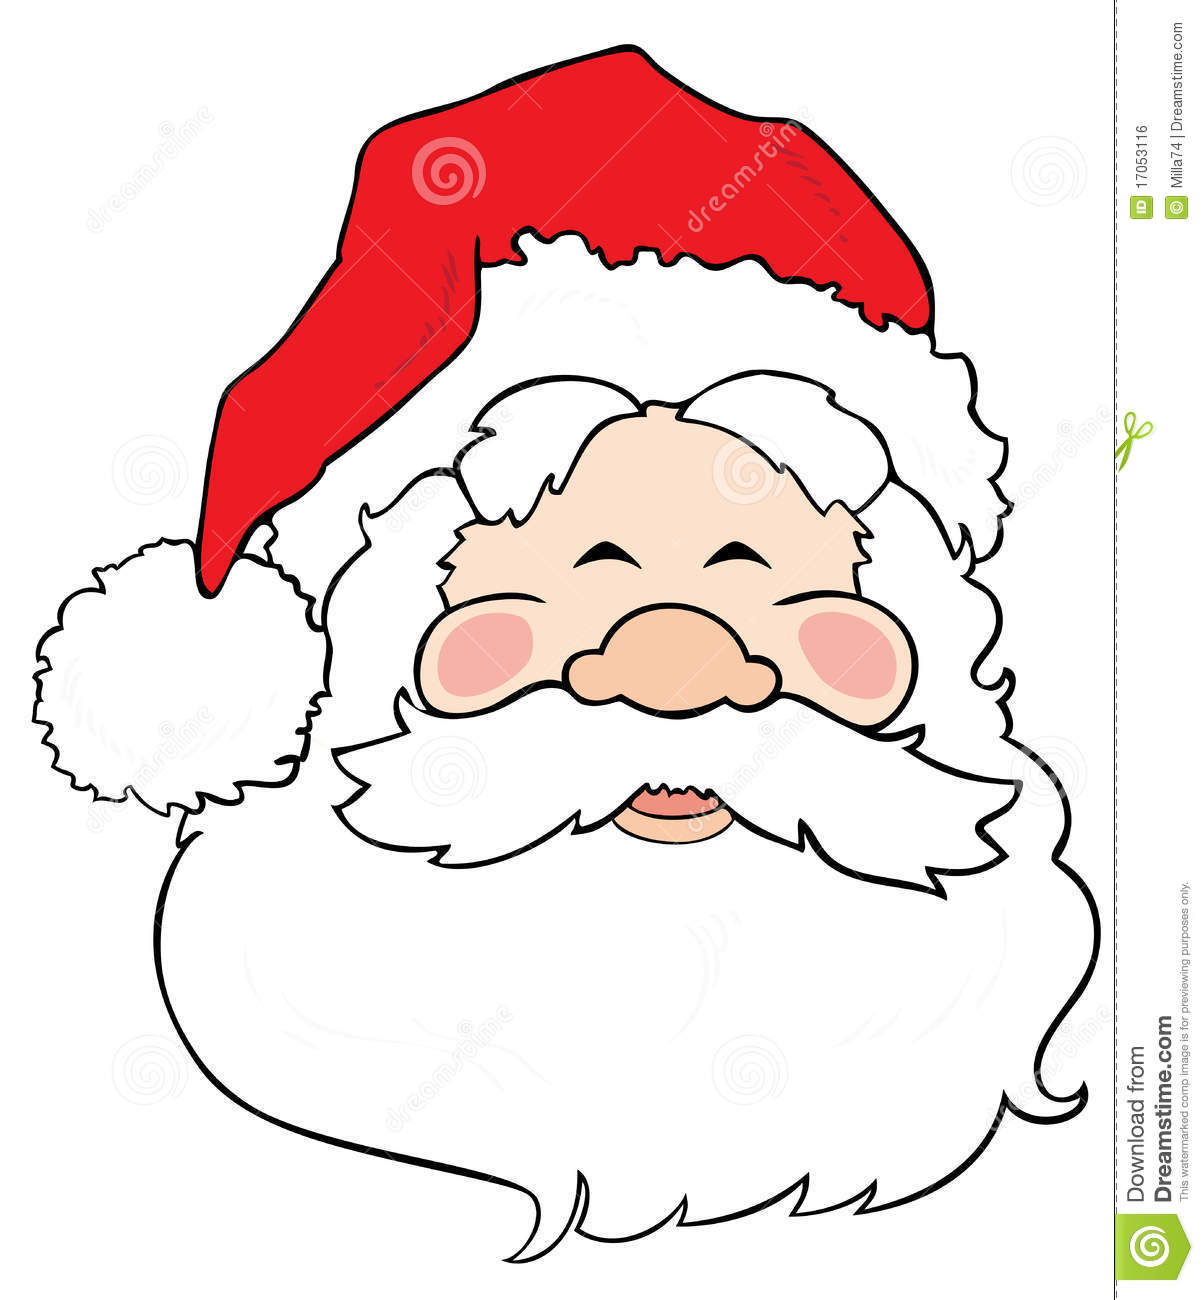 Santa Claus Smiling. Royalty Free Stock Image - Image: 17053116